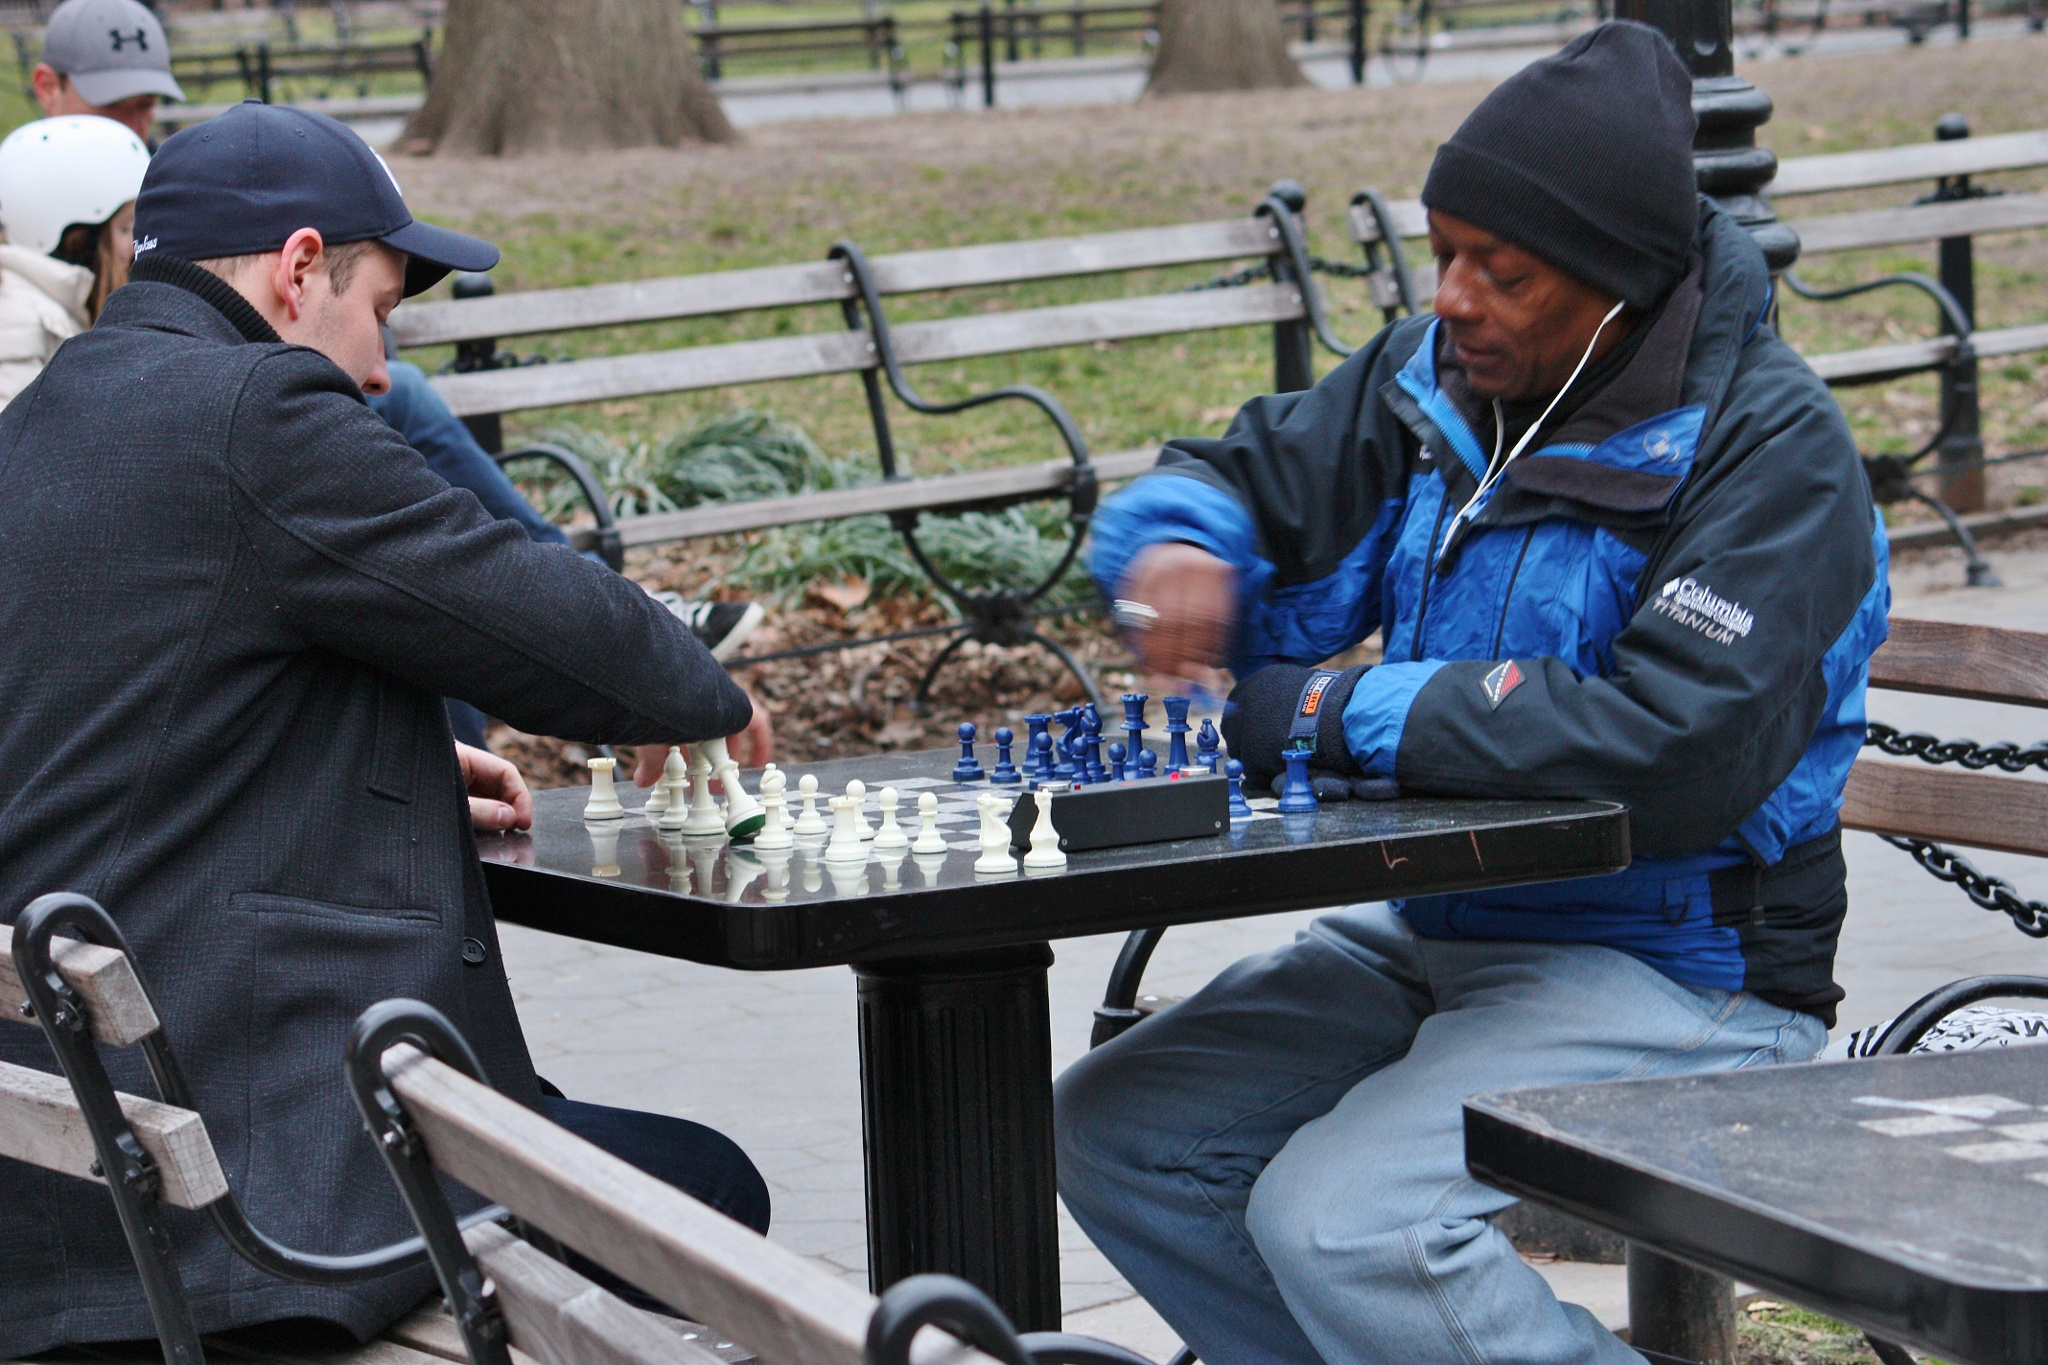 Playing games in the park, by Liborio Drogo